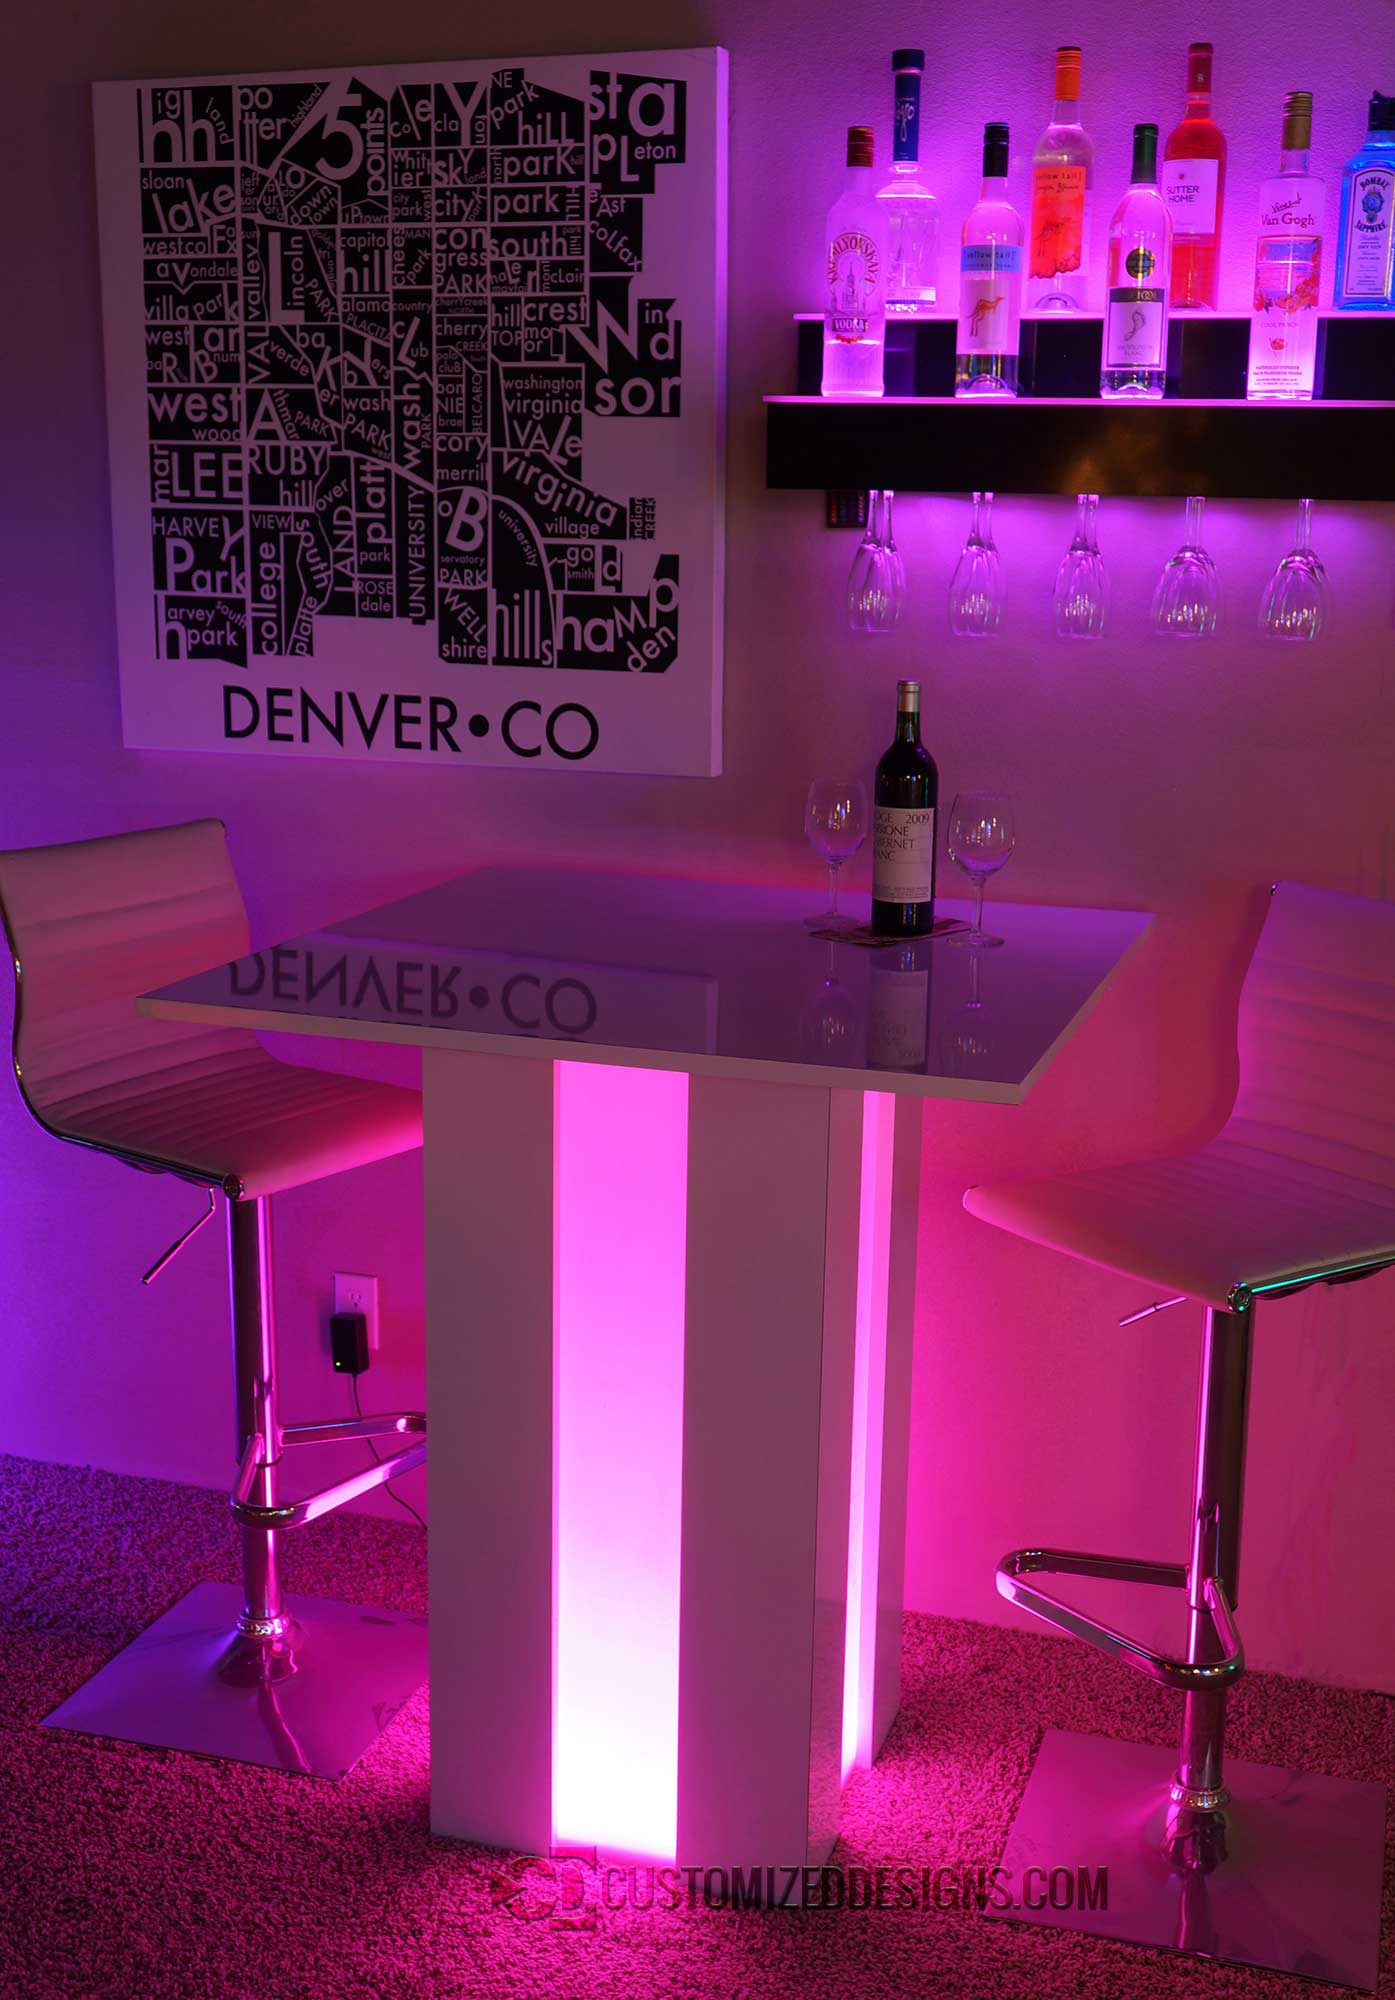 Mirage Illuminated Lounge Table